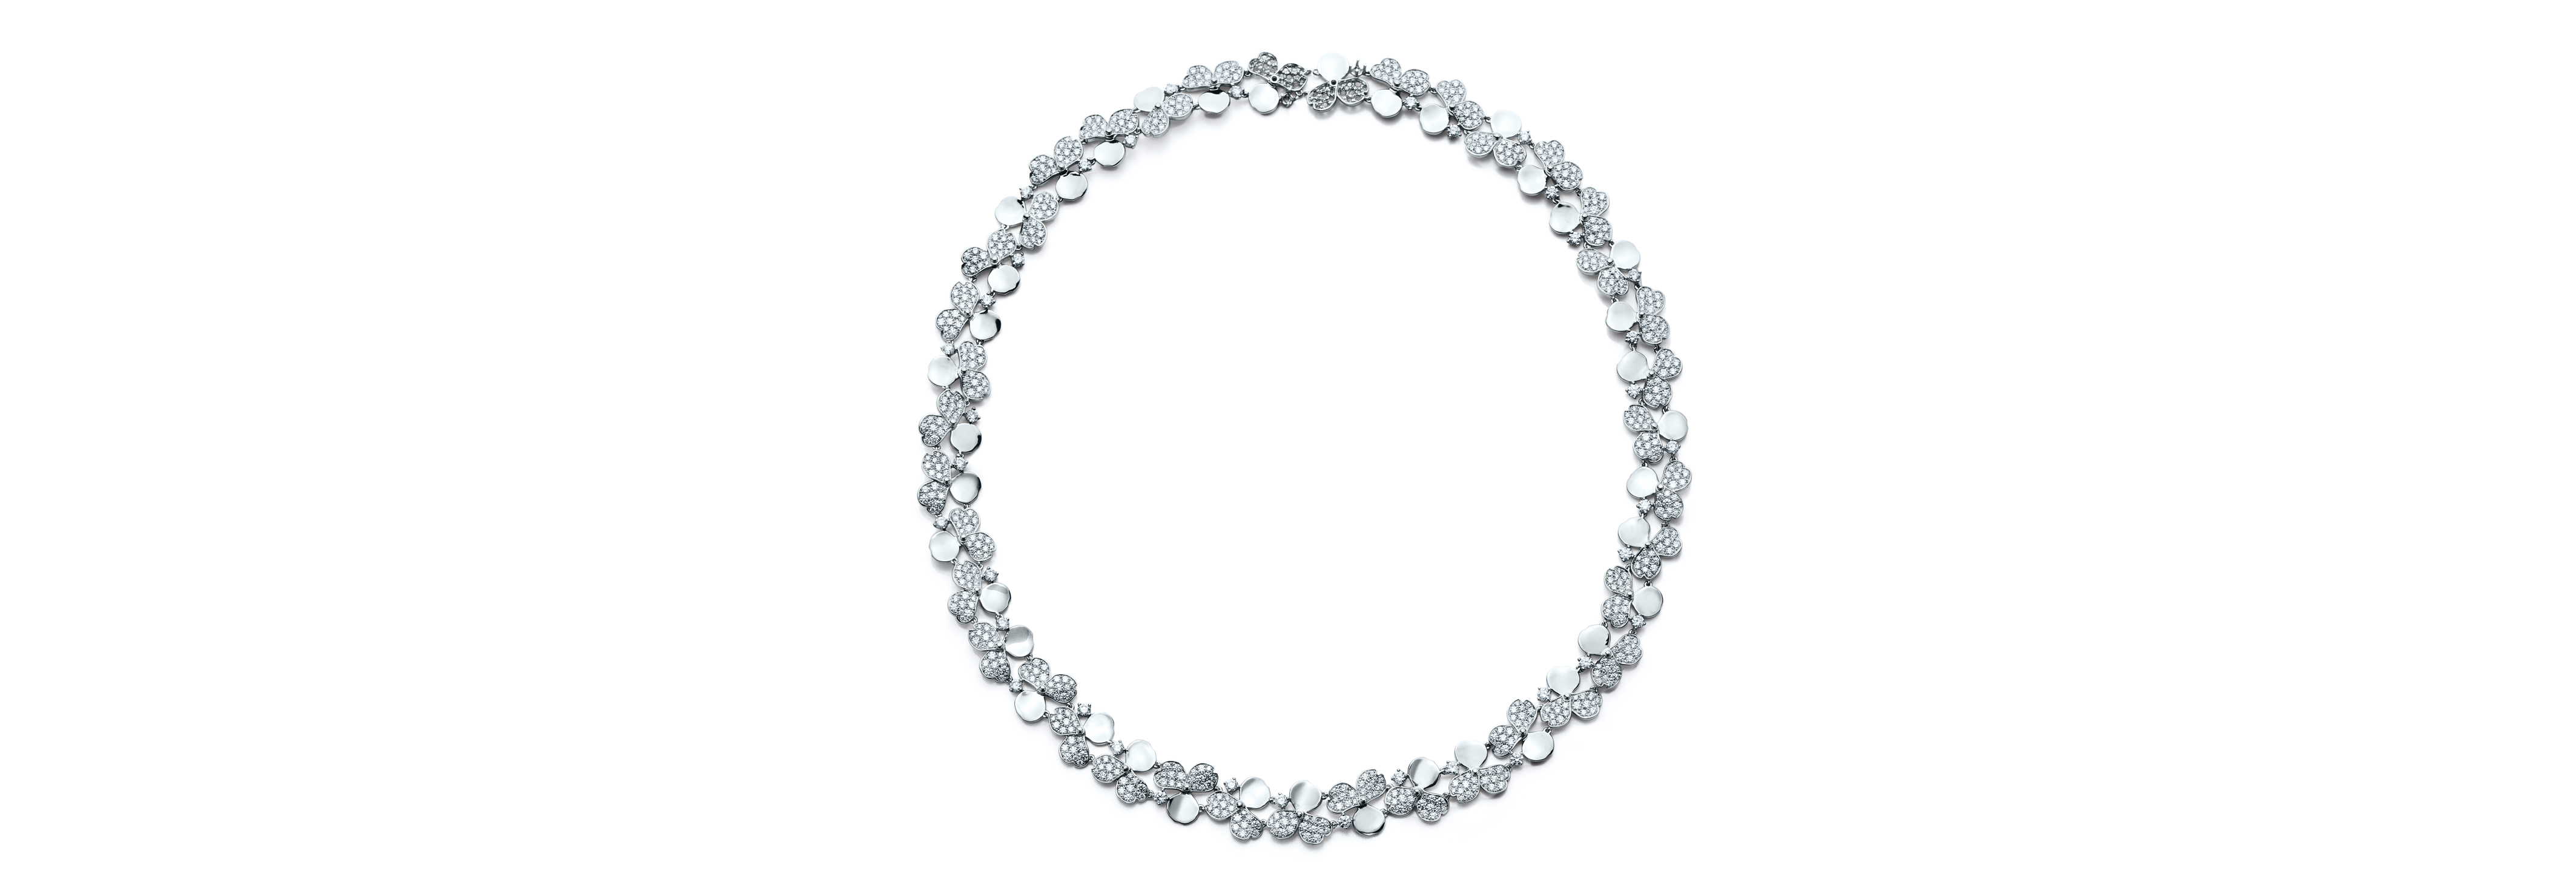 Tiffany Paper Flowers™ diamond cluster necklace in platinum